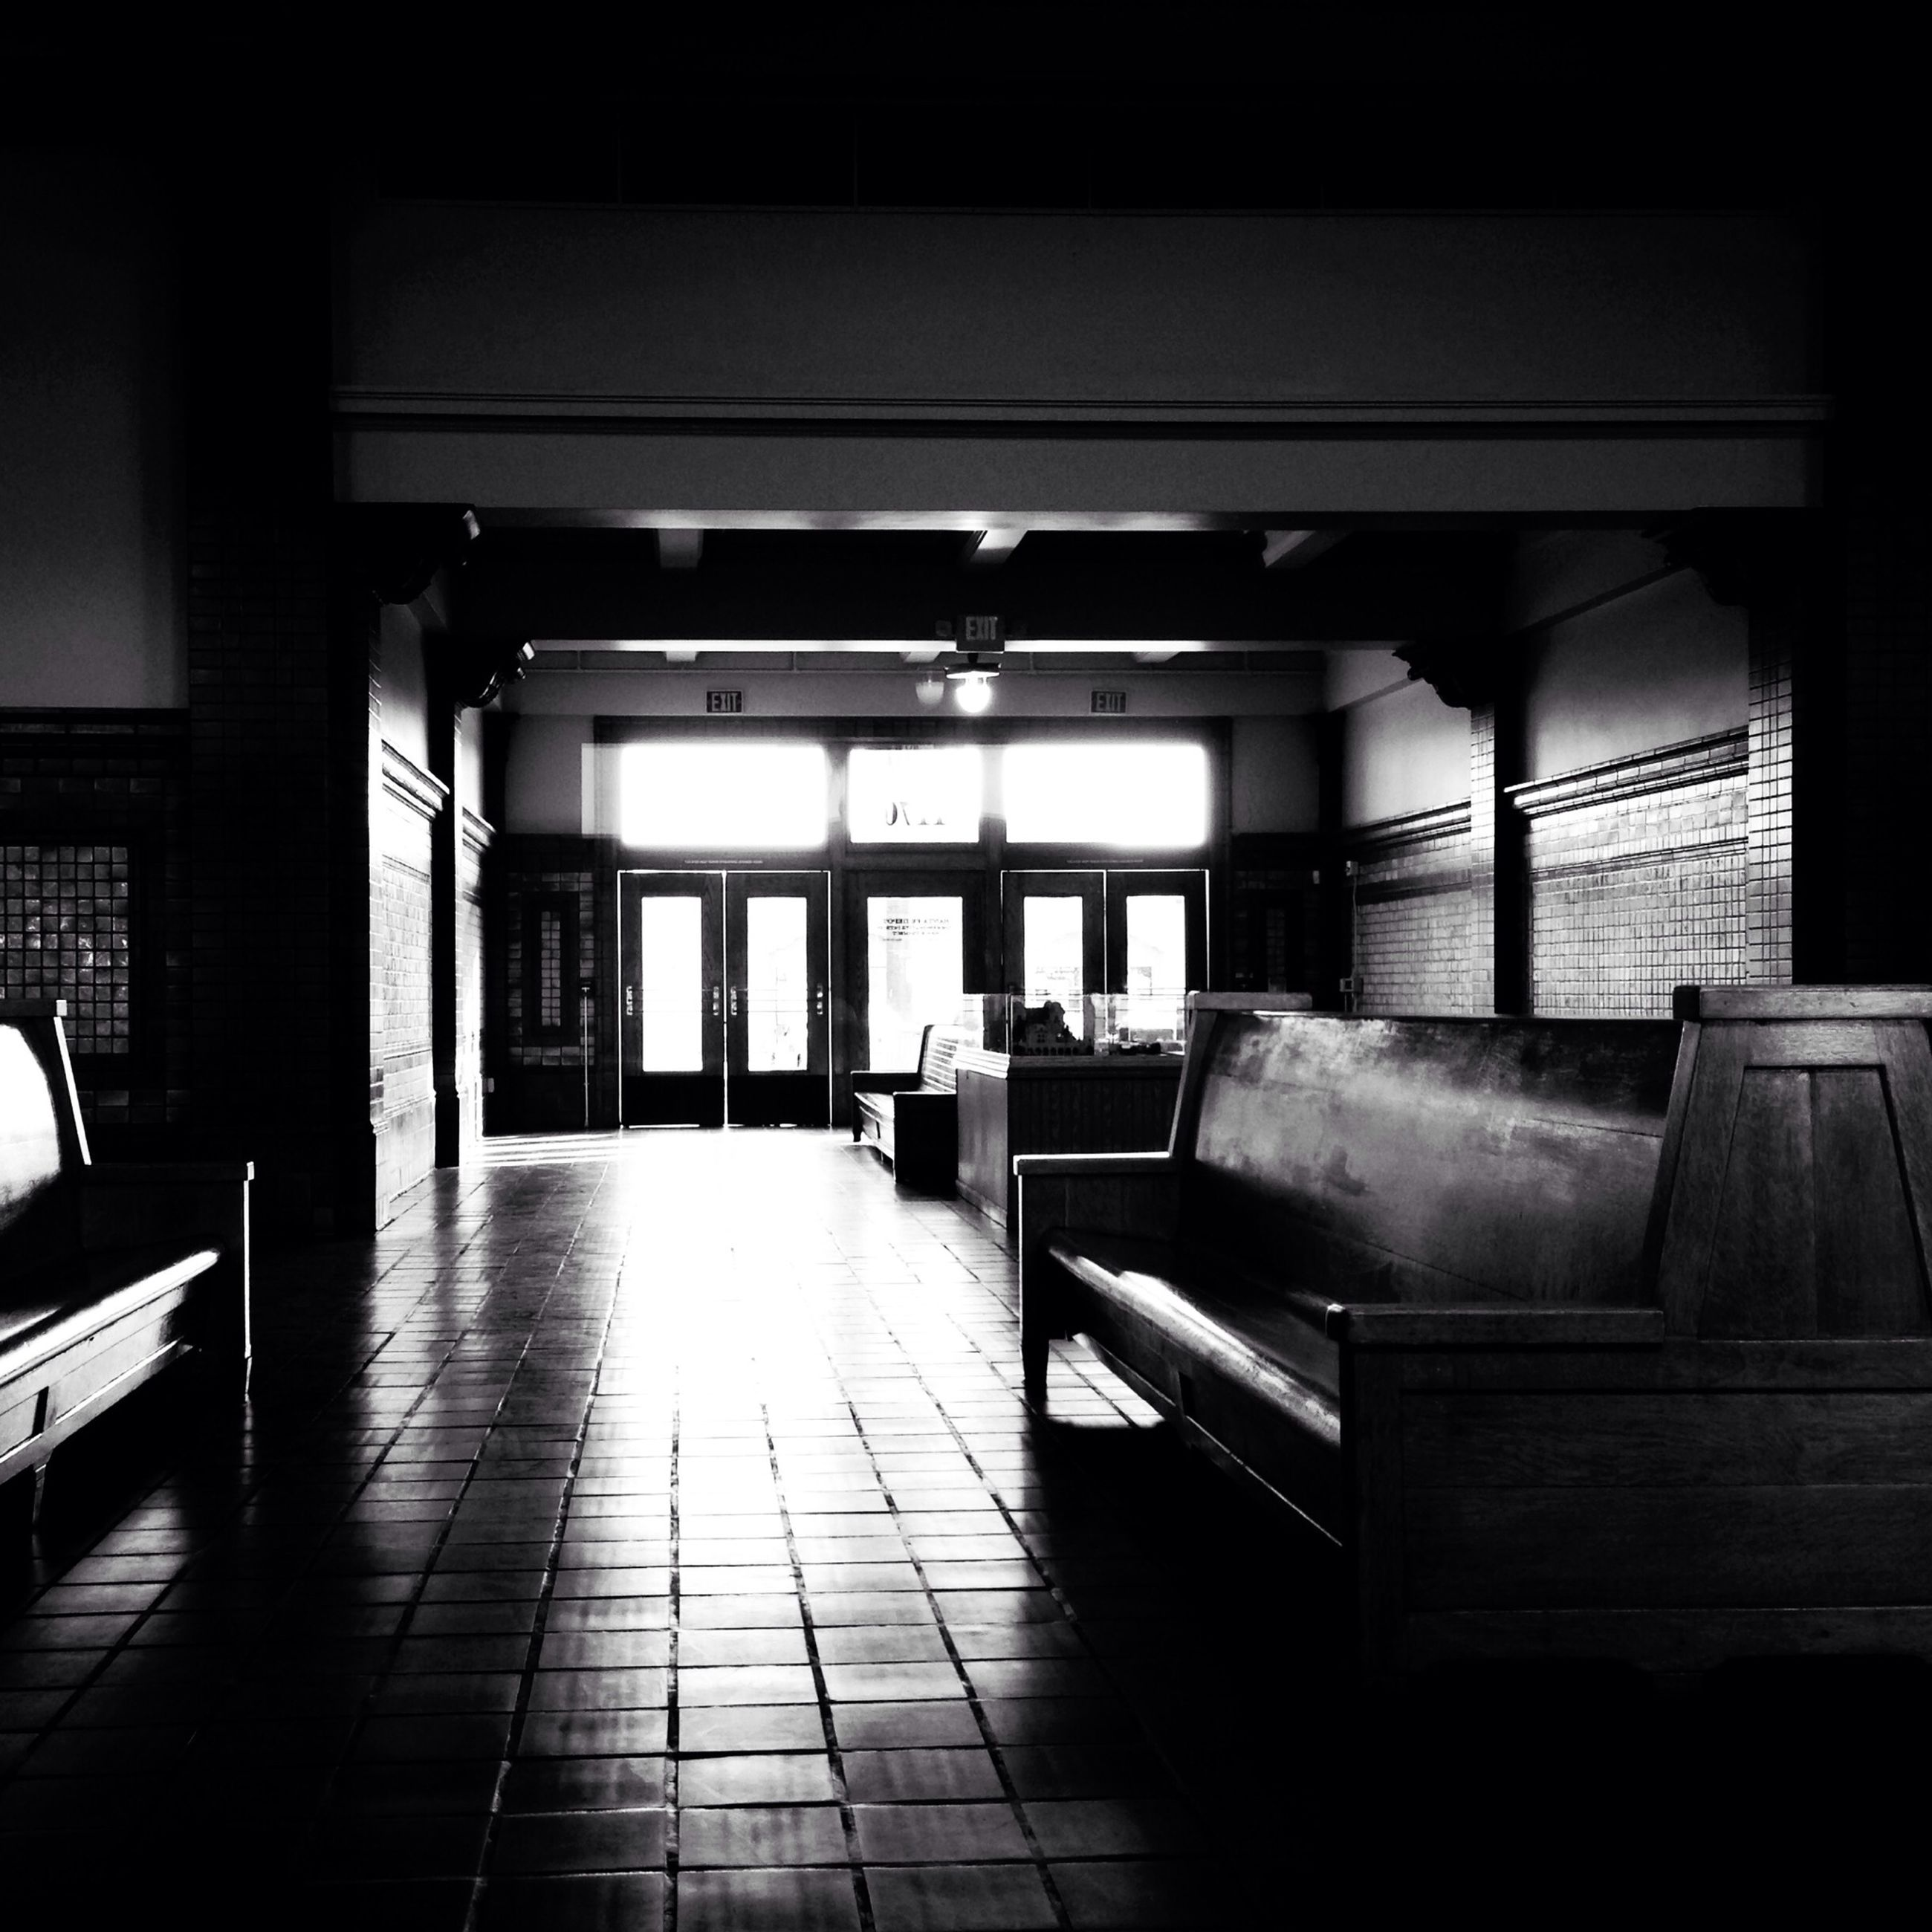 indoors, empty, architecture, built structure, absence, flooring, tiled floor, the way forward, corridor, illuminated, chair, ceiling, interior, door, narrow, transportation, incidental people, no people, railroad station, diminishing perspective